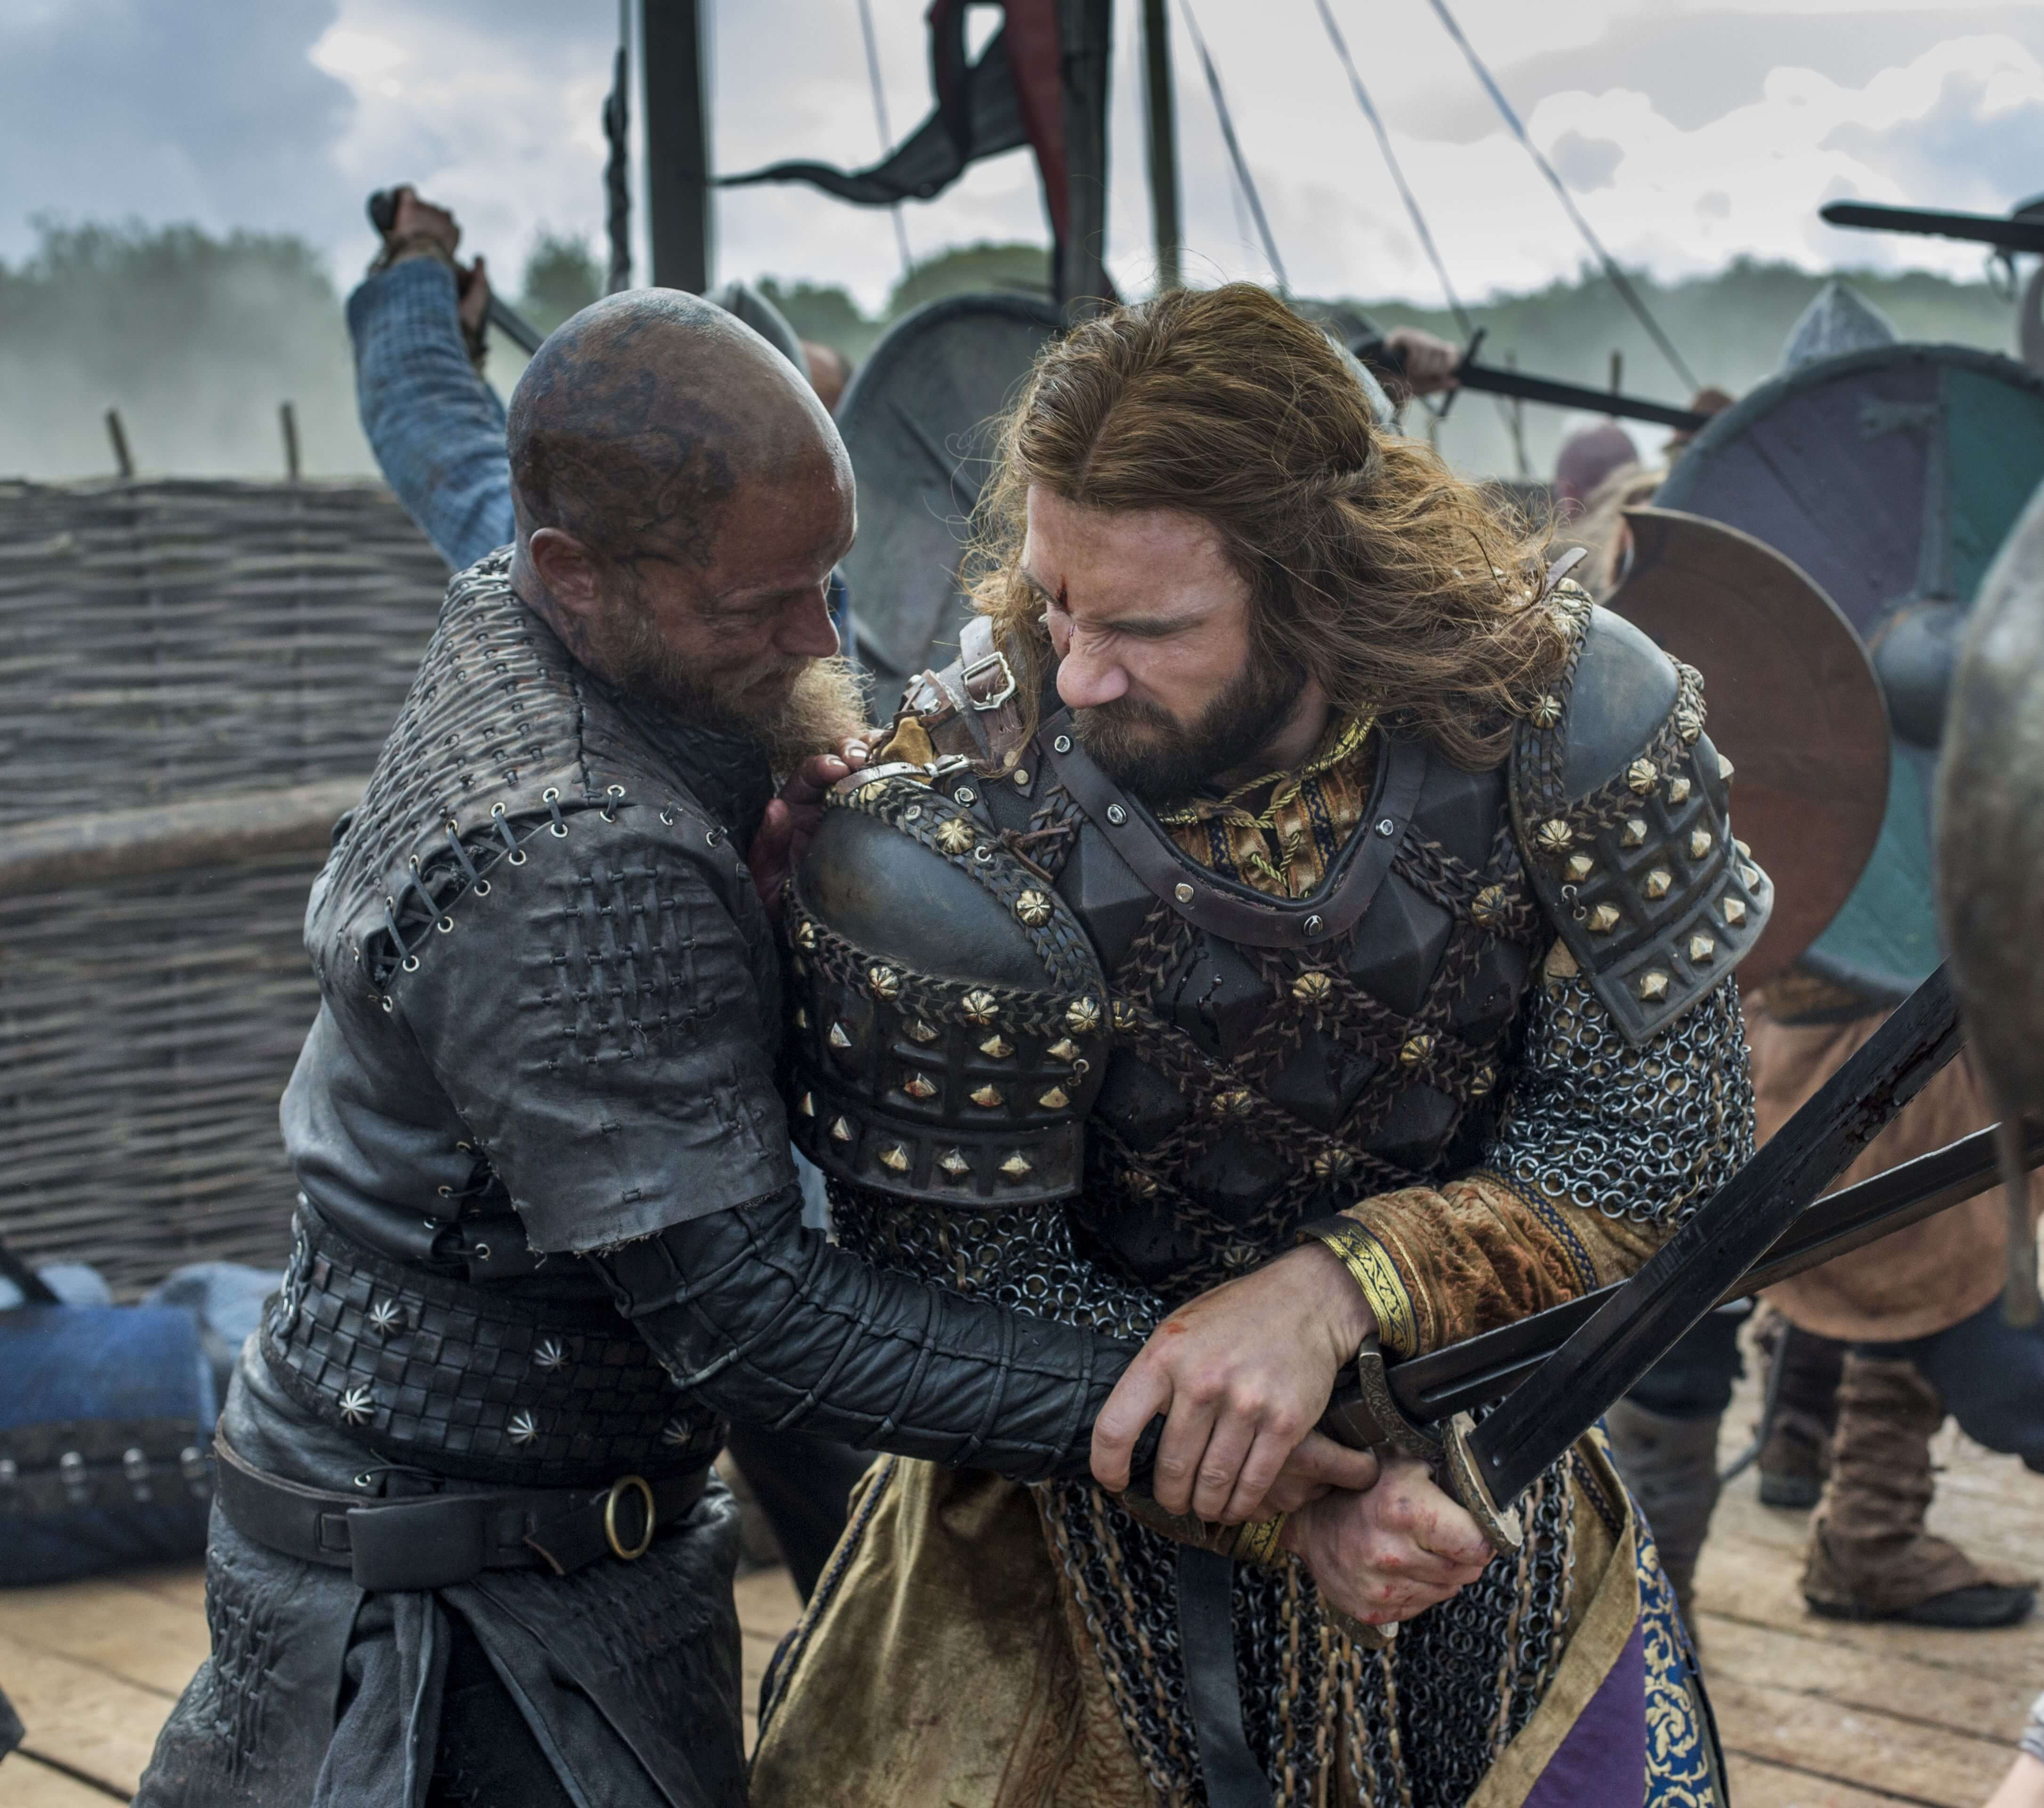 Vikings Season 4 Episode 10 The Last Ship Recap And Discussion